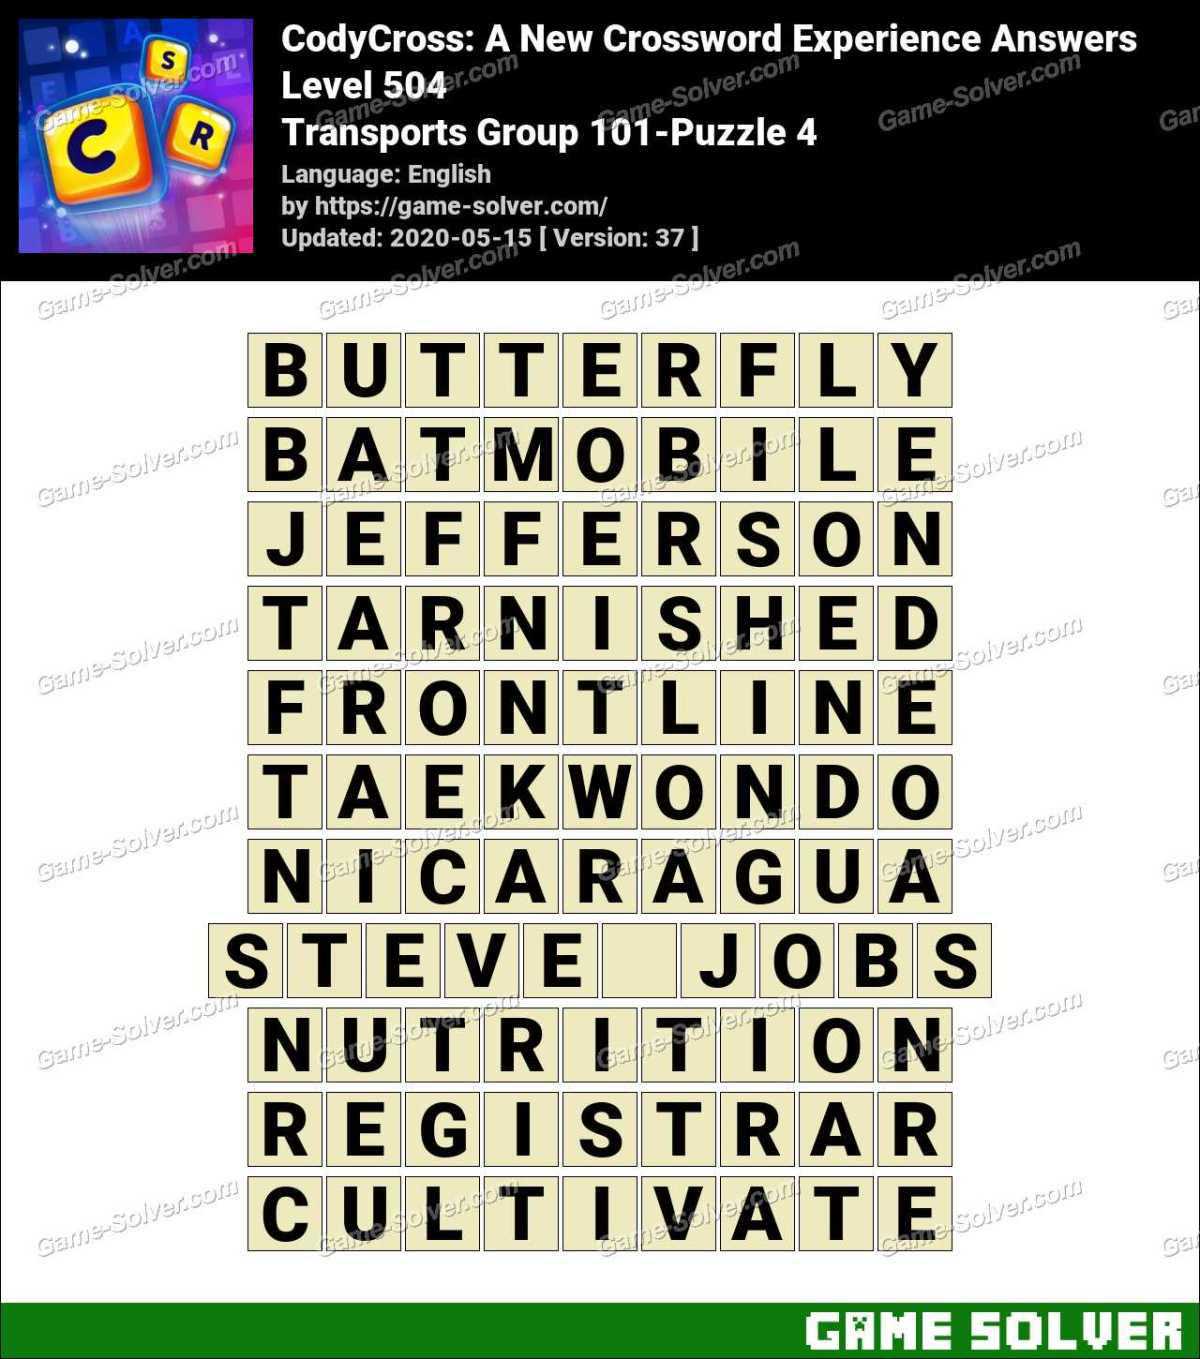 CodyCross Transports Group 101-Puzzle 4 Answers